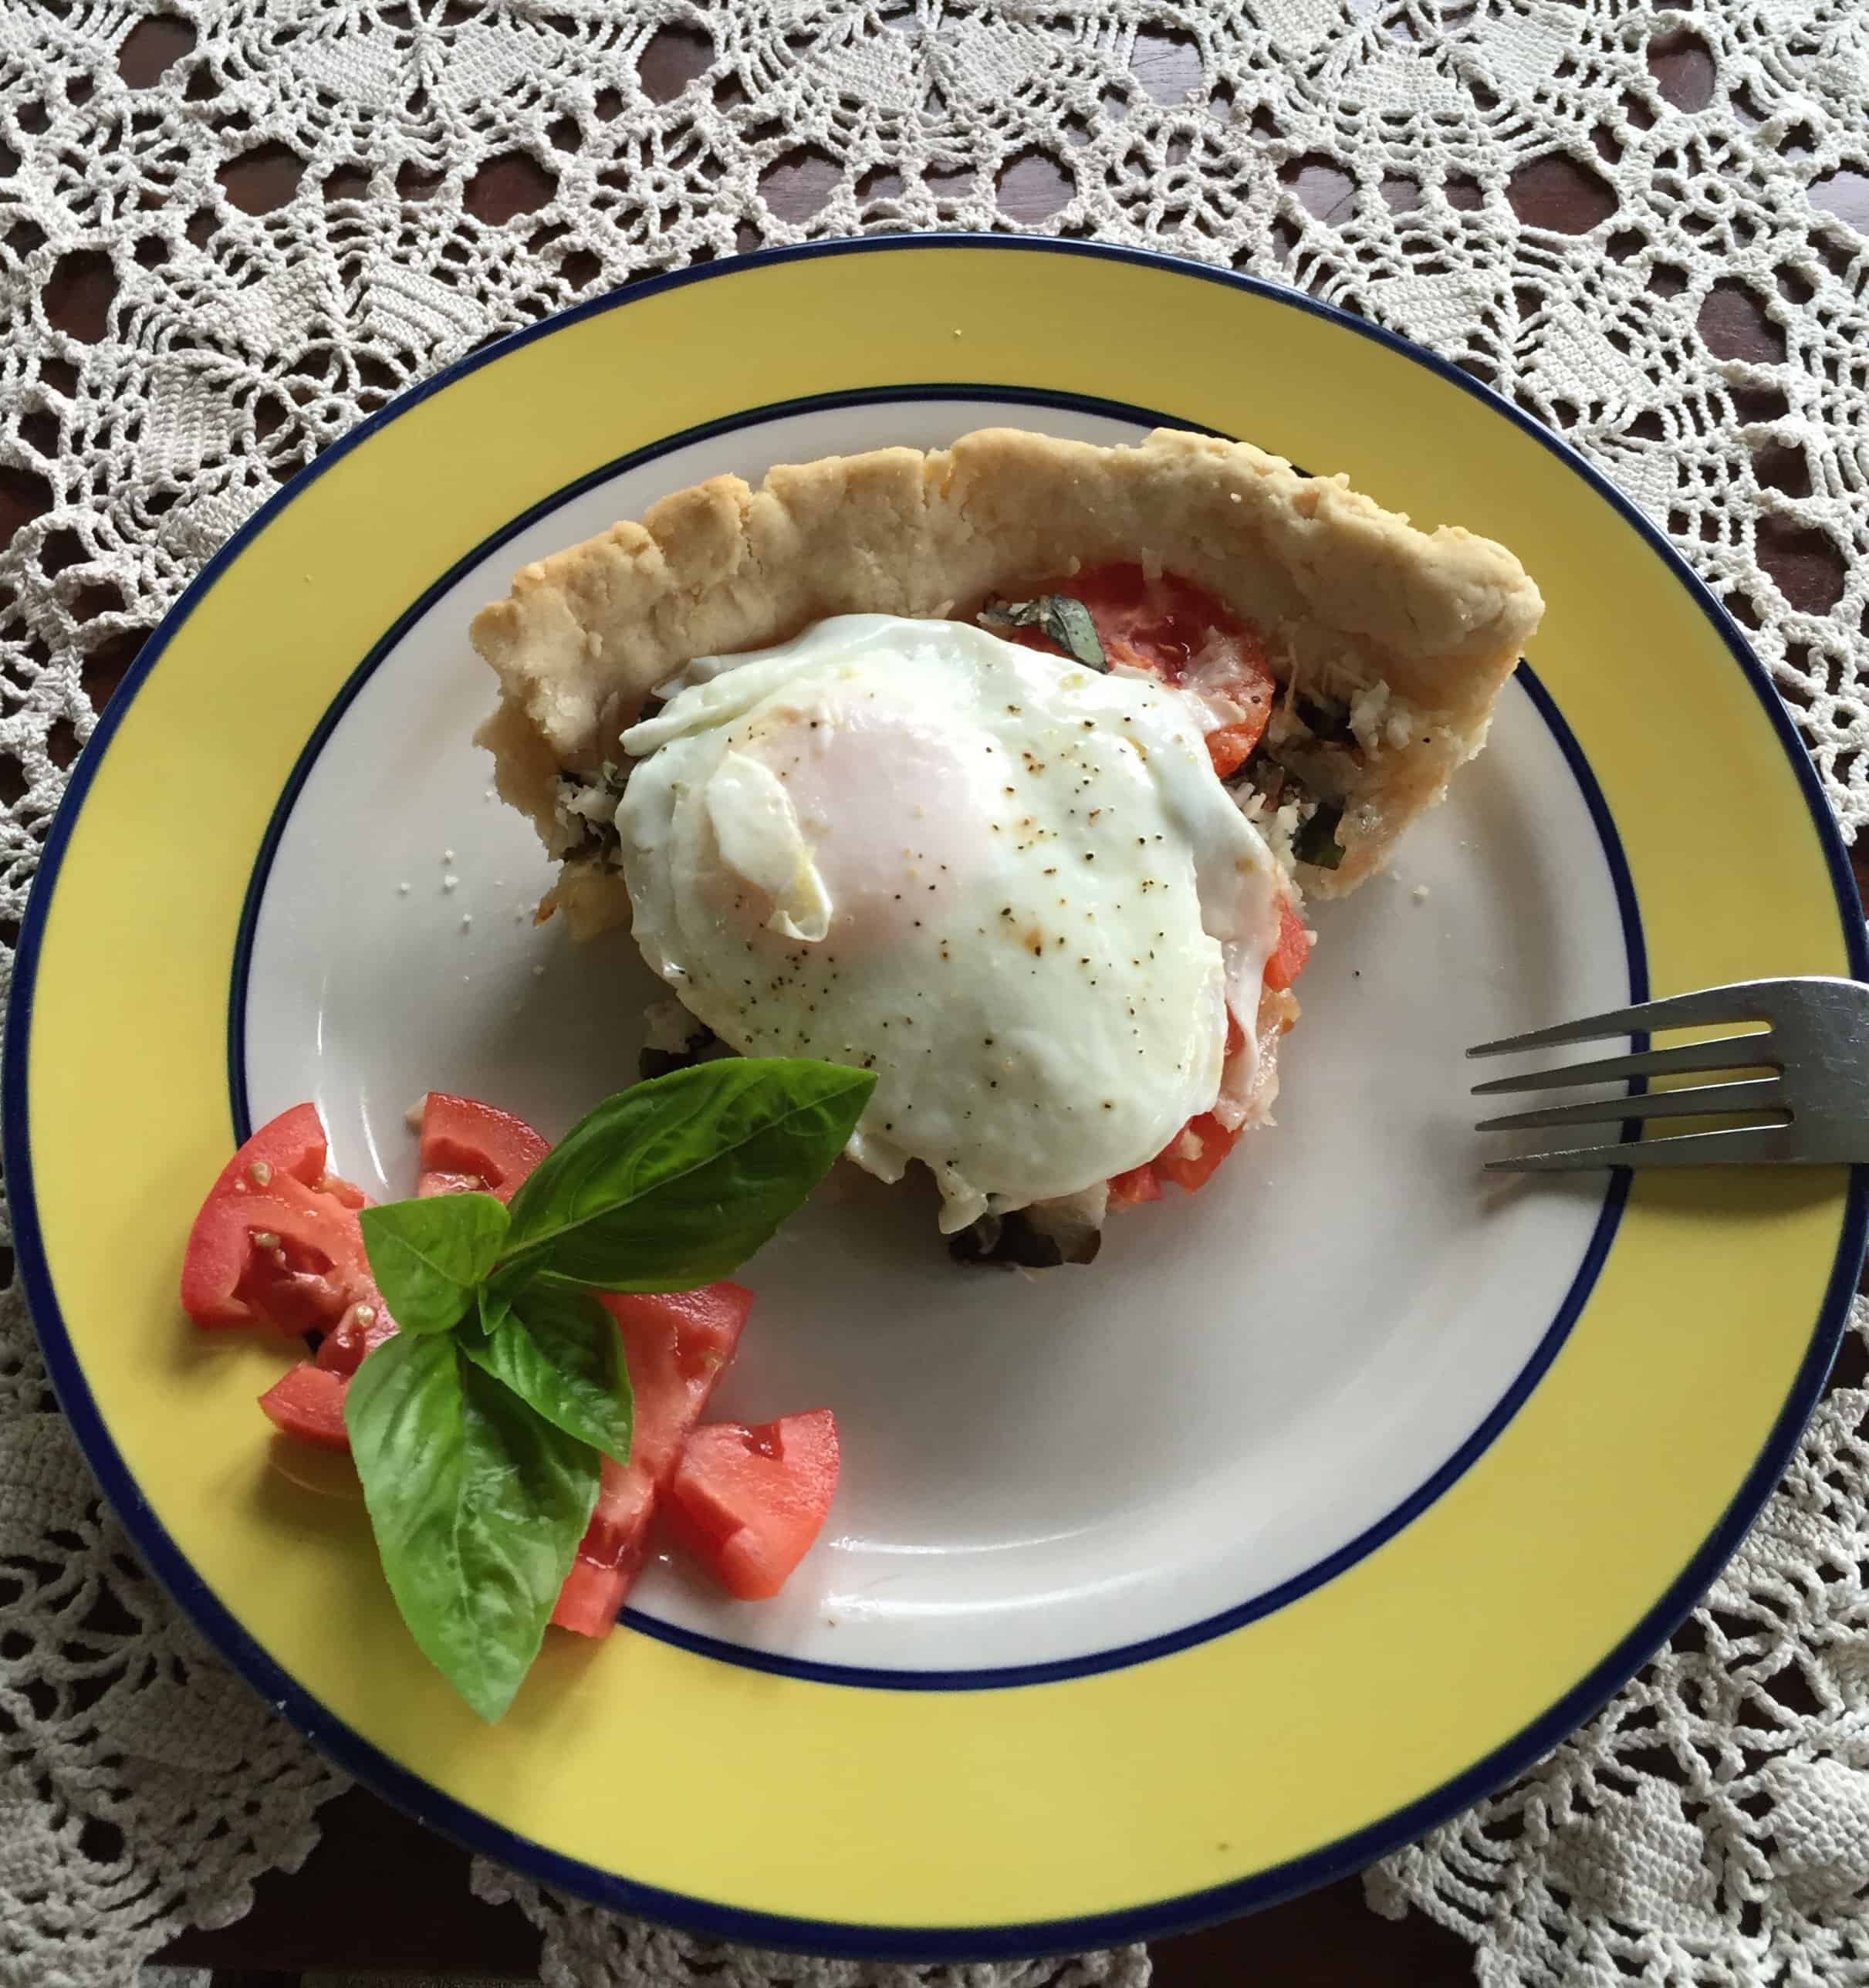 Gluten Free Tomato Basil Breakfast Tart with a Fried Egg on Top